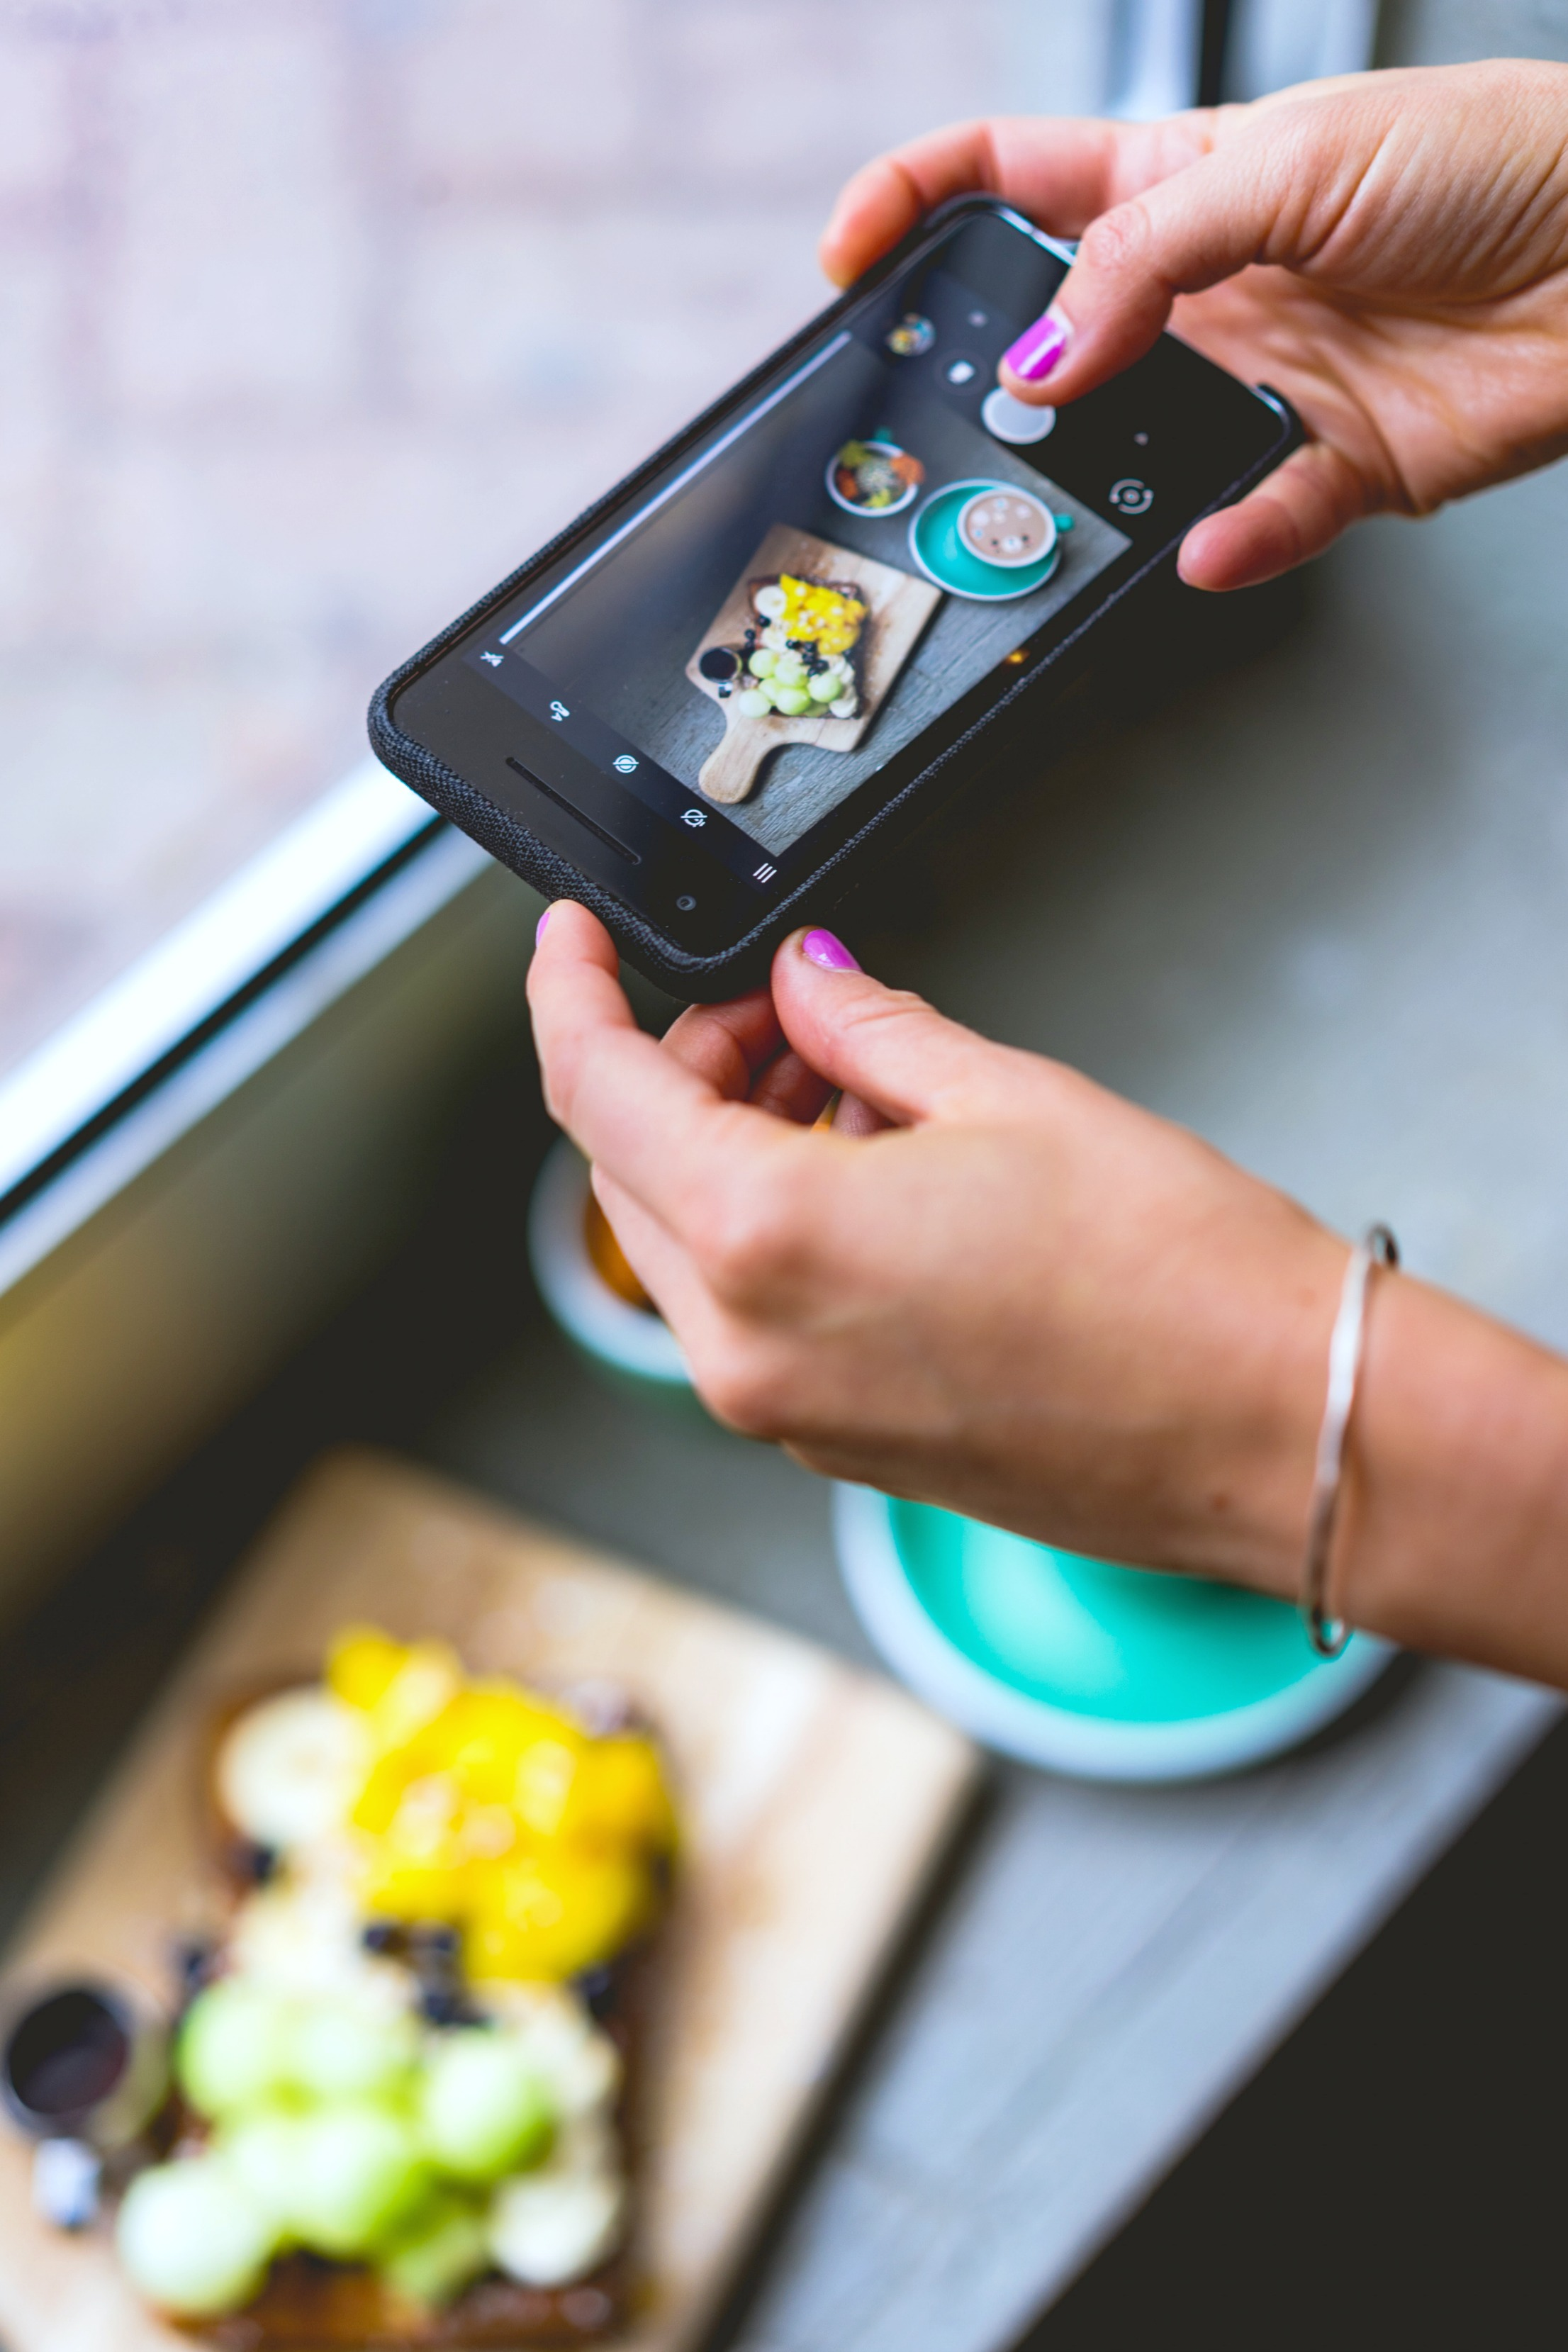 A woman prepares a meal and photographs it with her smartphone.